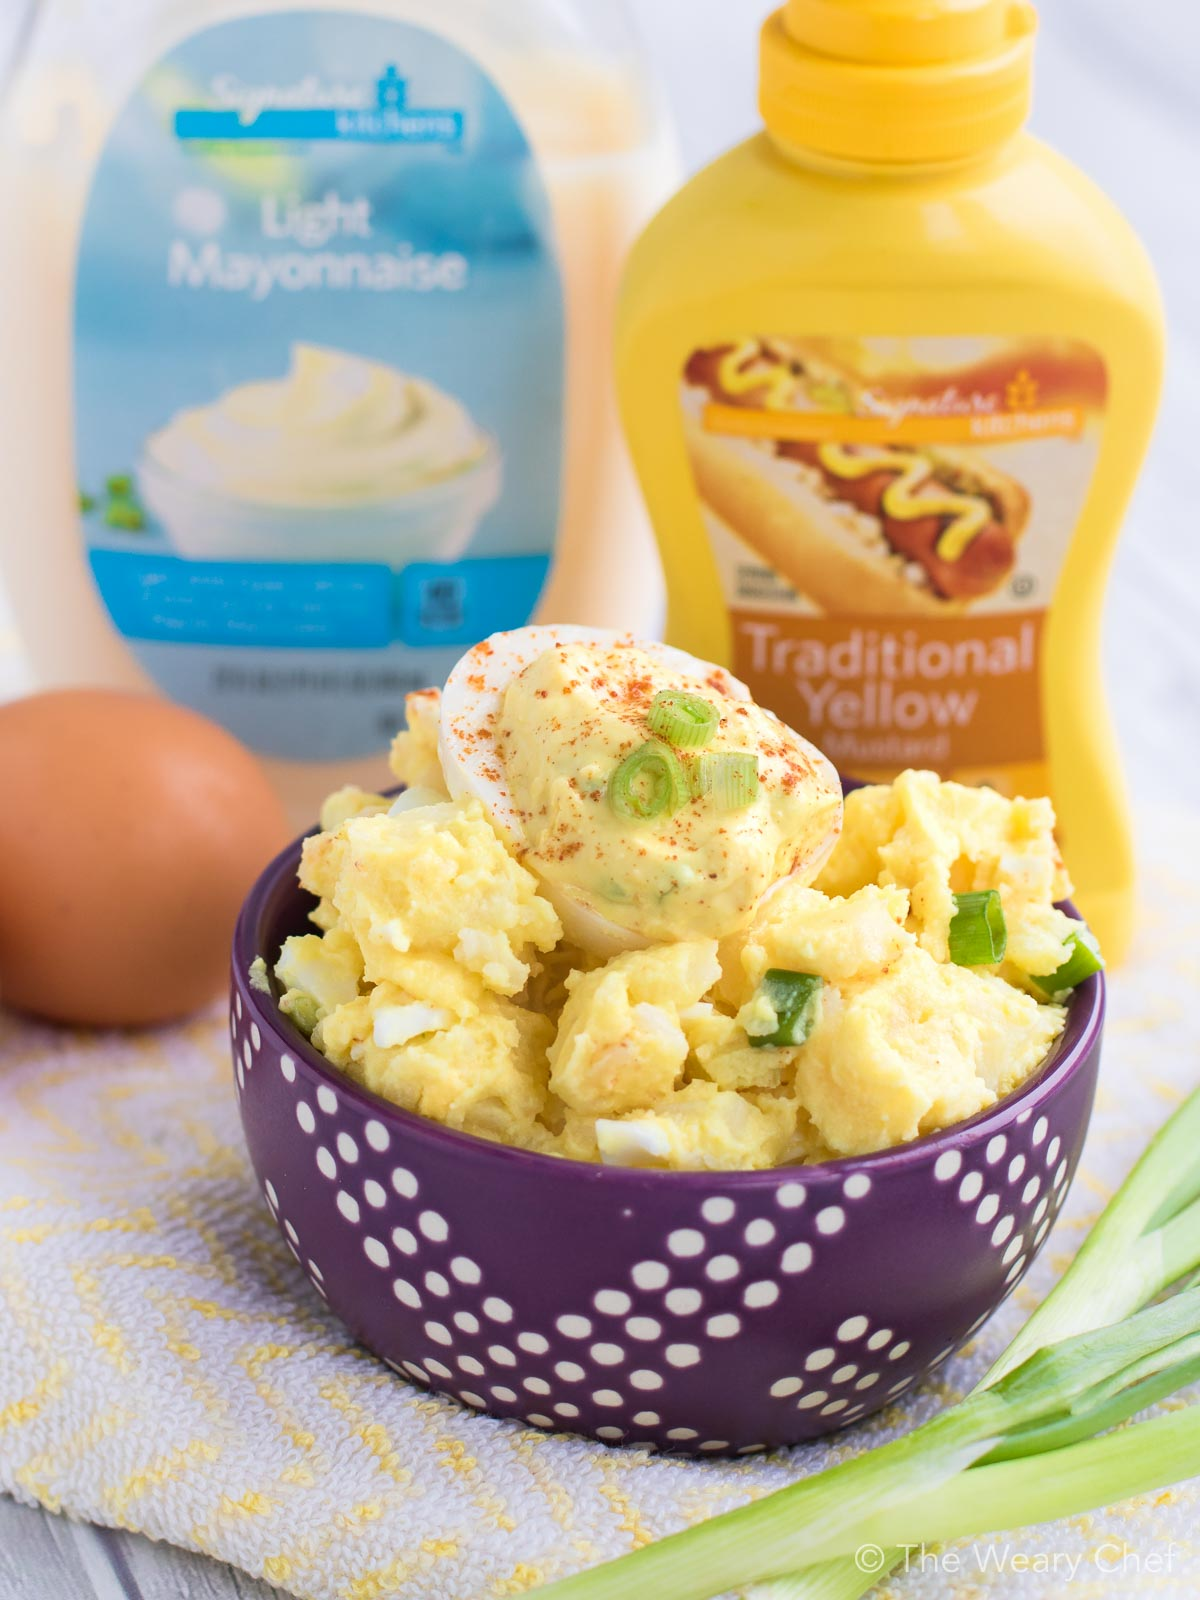 You only need a few simple ingredients to make this deviled egg potato salad this summer.